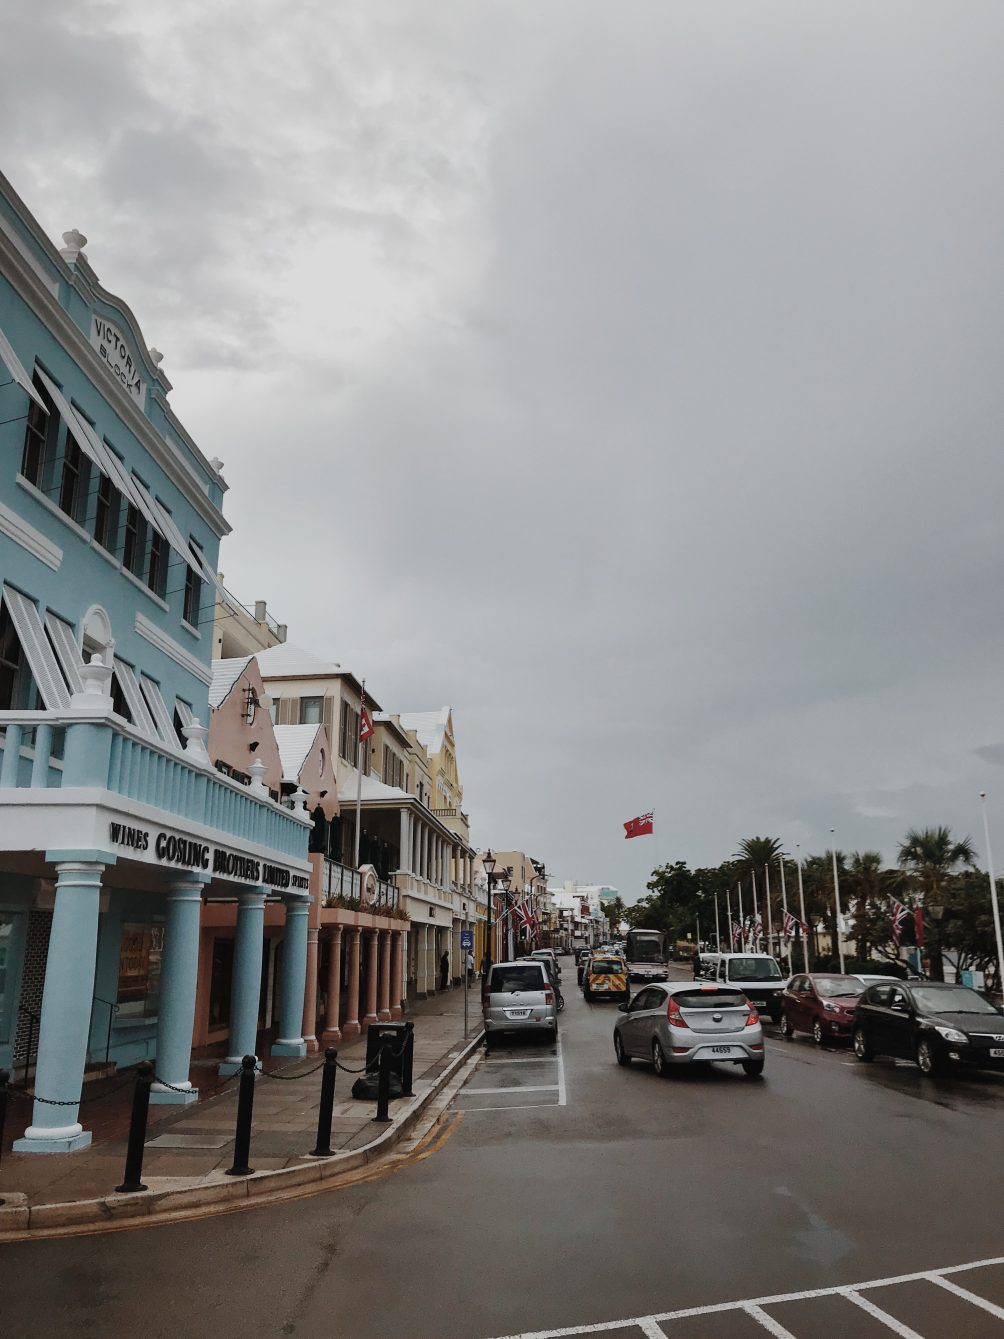 sharing our Bermuda family vacation travels staying at Hamilton Princess with recommendations on what to see, where to eat, and places to shop